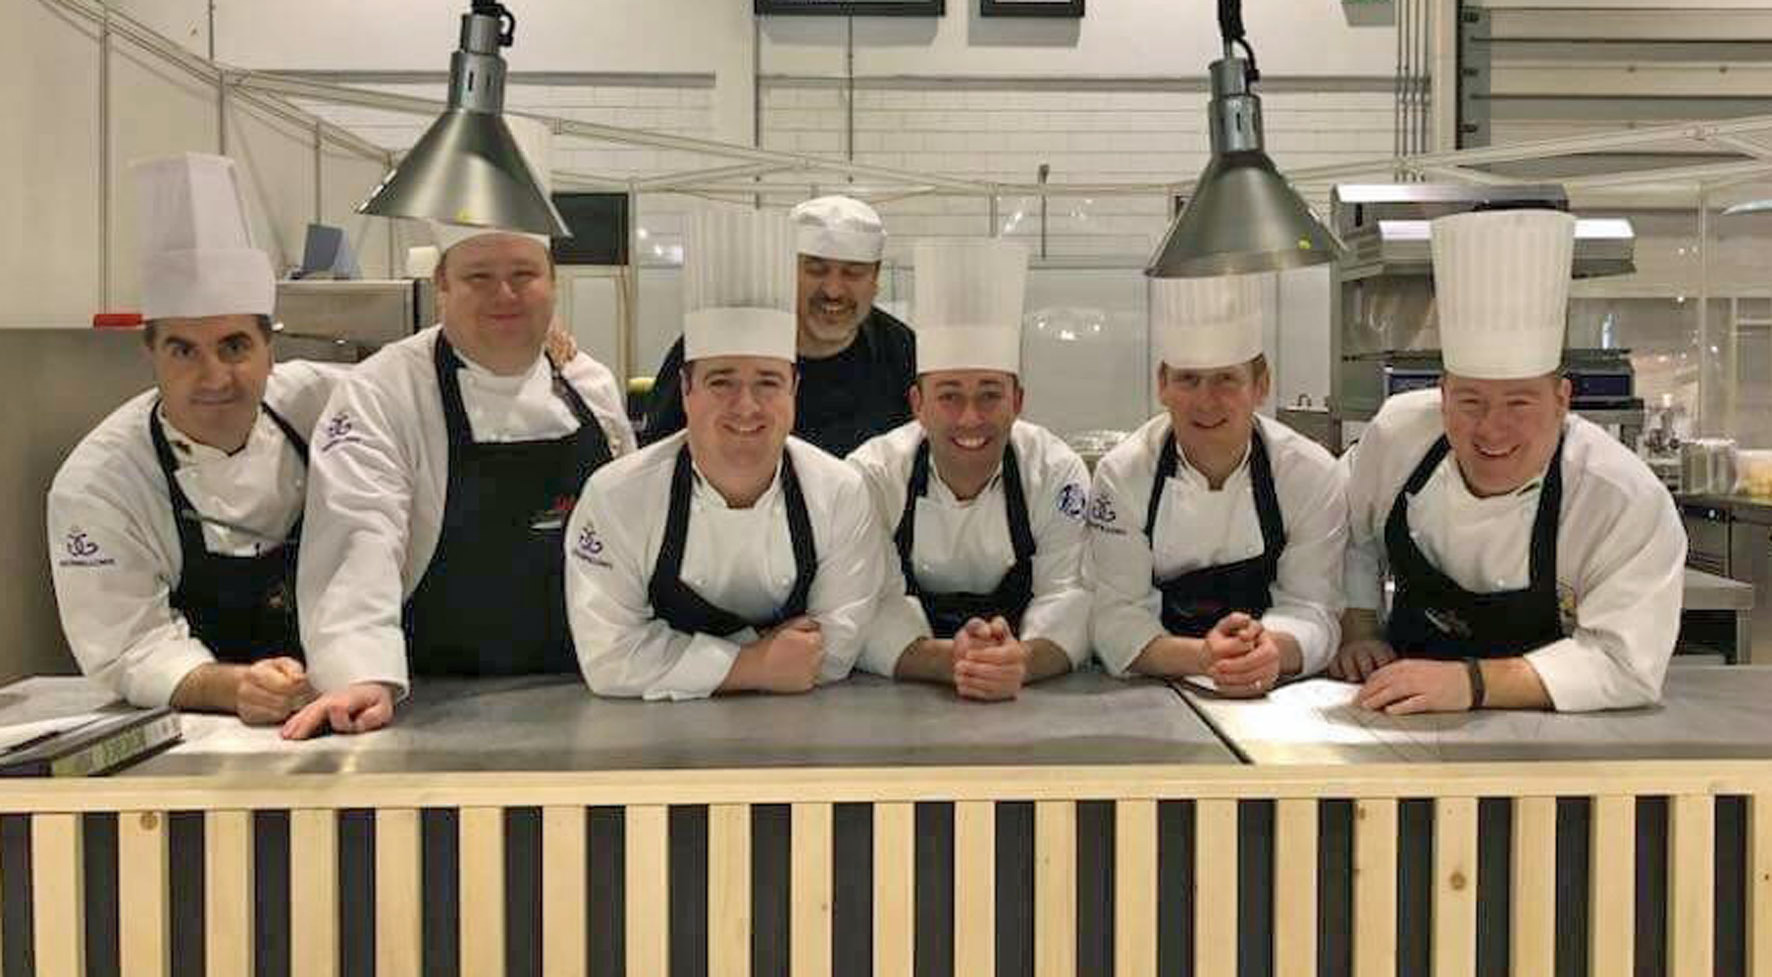 Culinary Team Wales: Sergio Cinotti, Jason Hughes, Hefin Roberts, Brian Henry, Danny Burke, Alun Davies and Toby Beevers